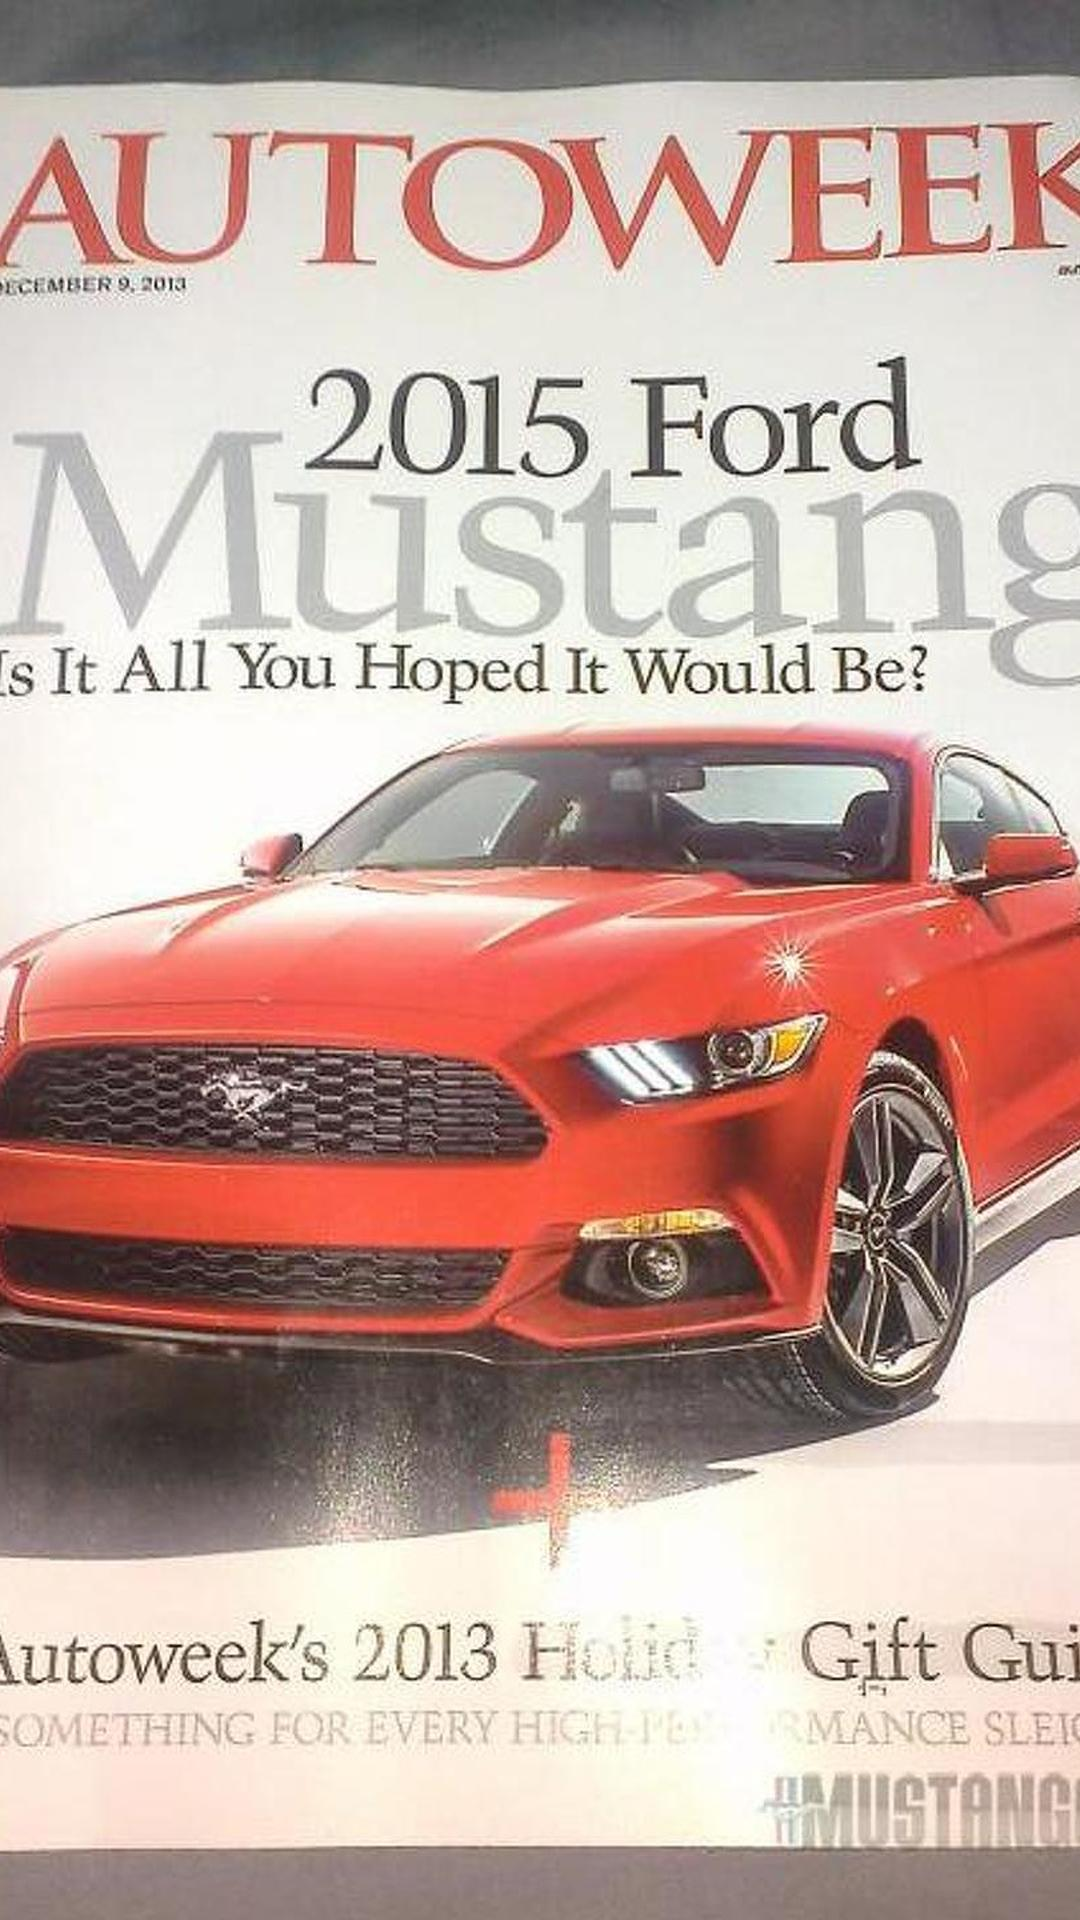 2015 Ford Mustang to be introduced alongside two new models at an event in Spain